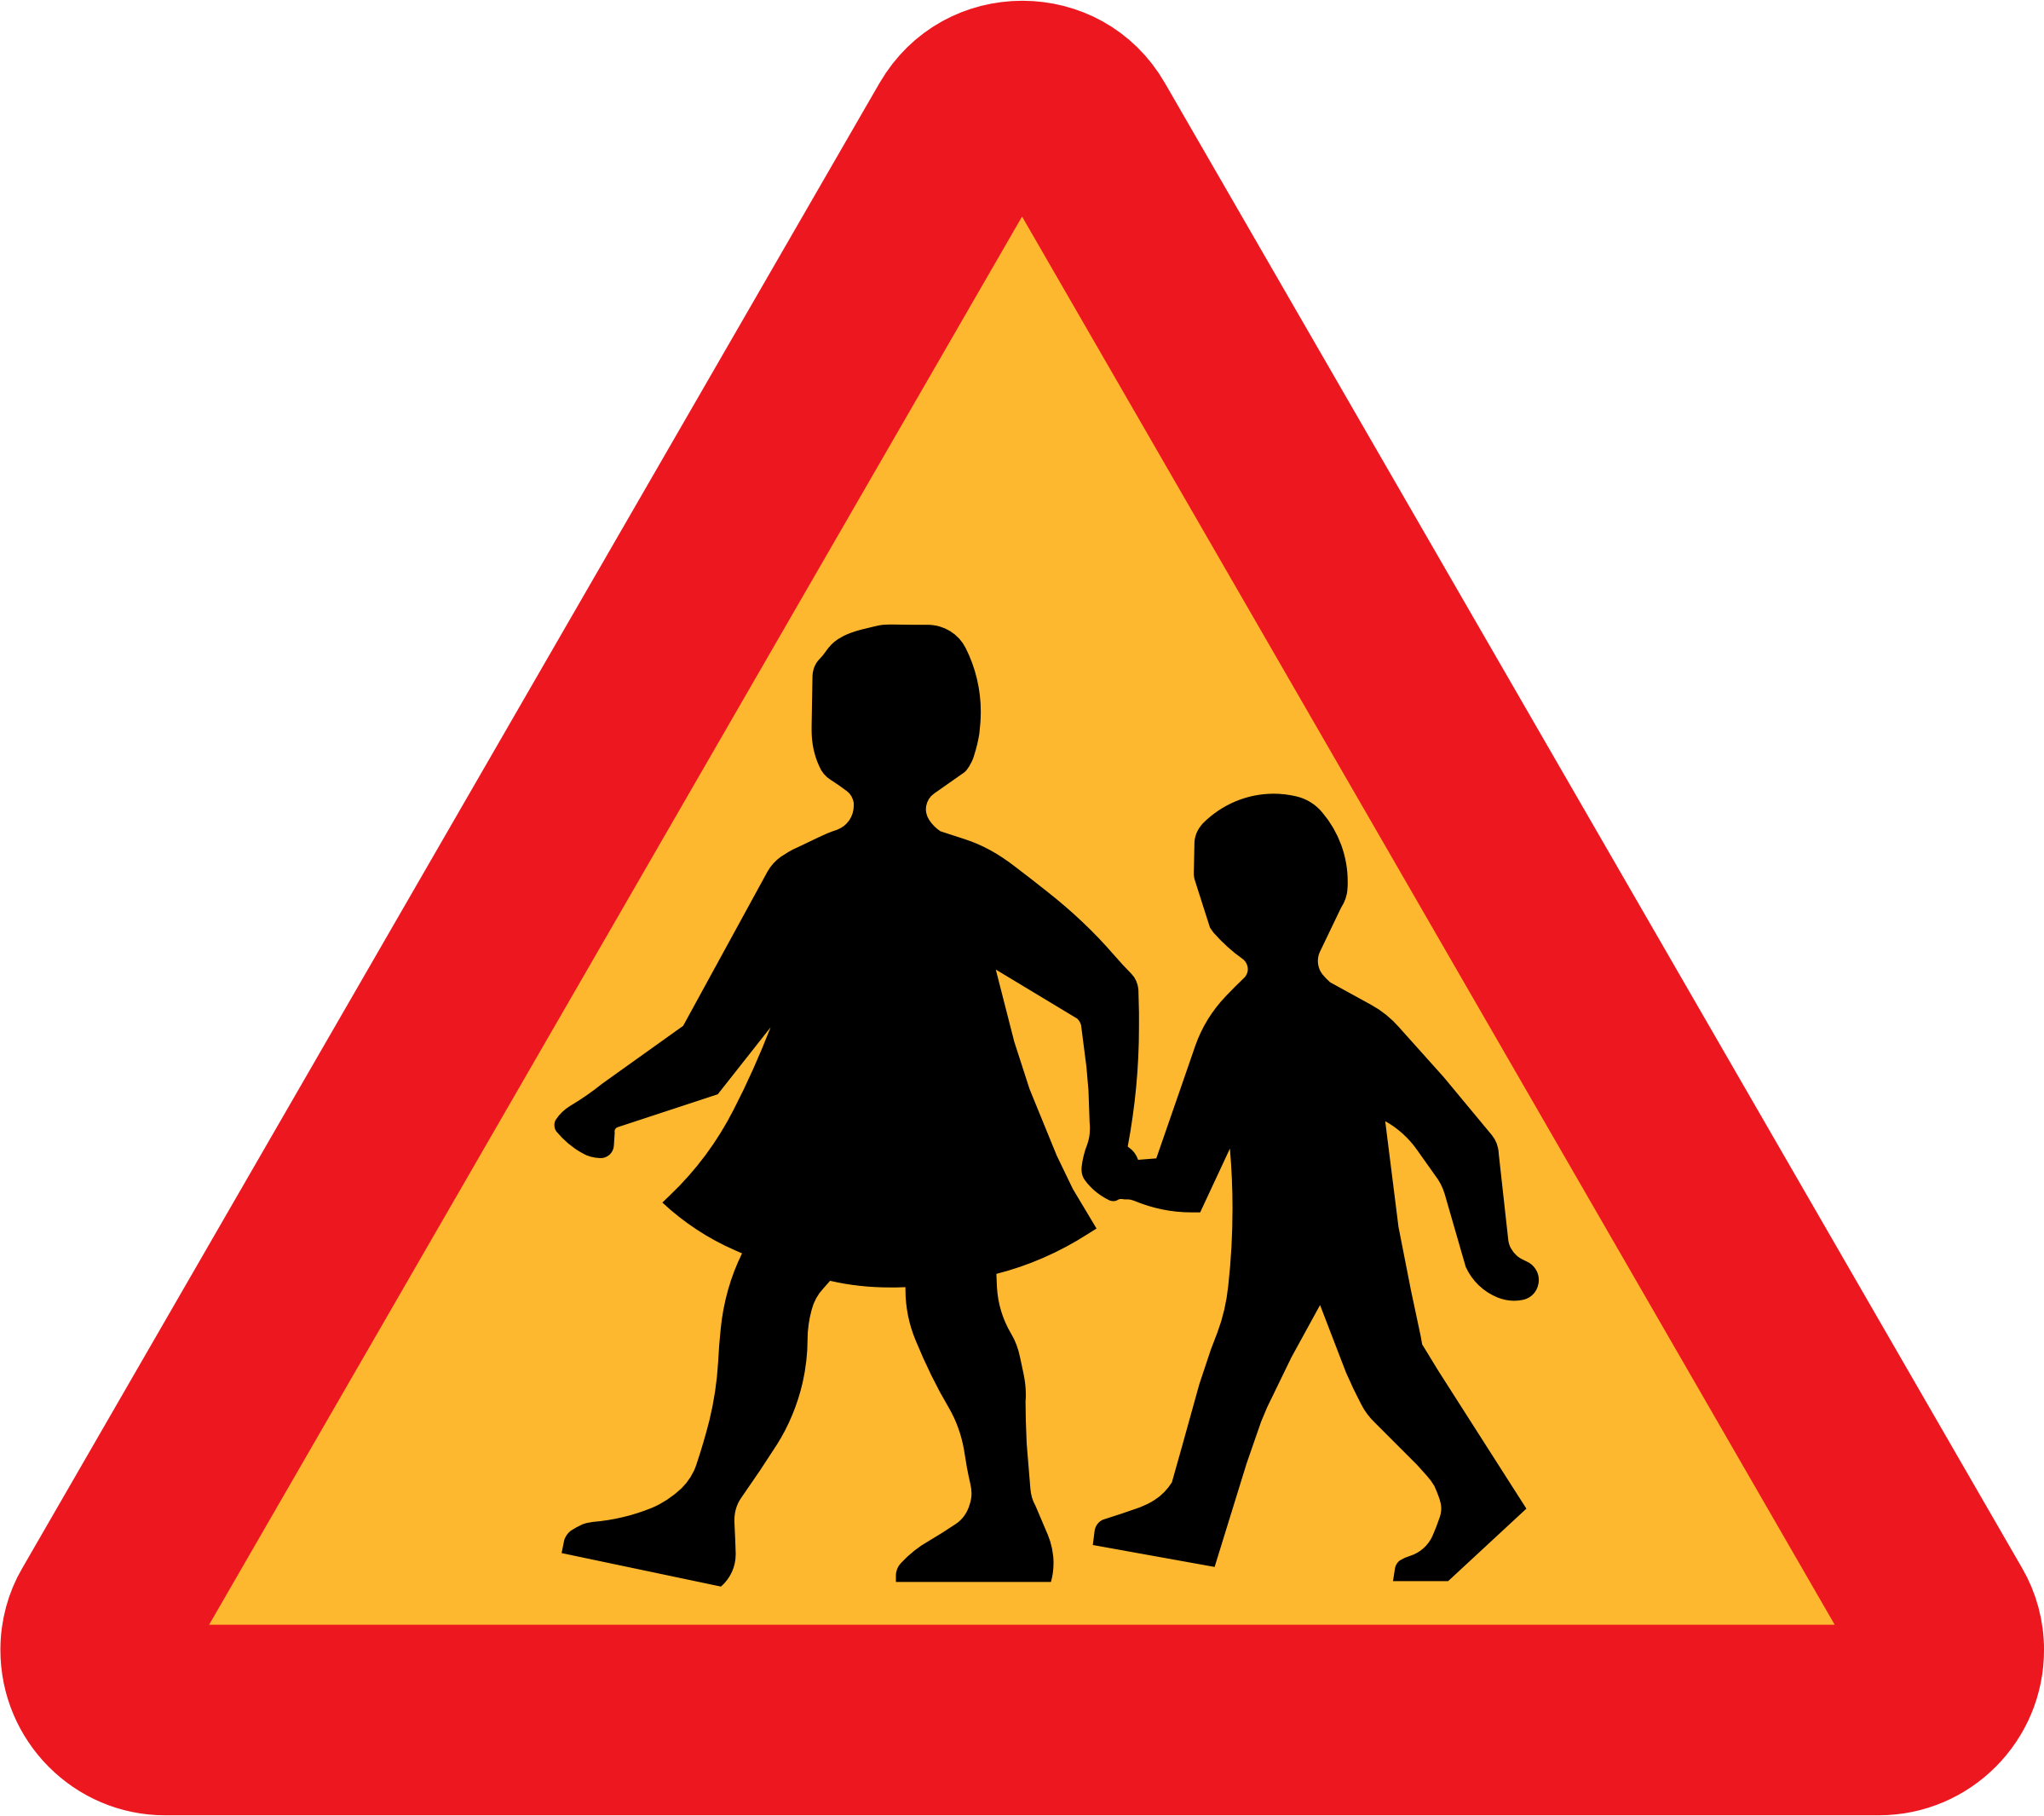 Hands clipart collaboration. Children crossing road sign